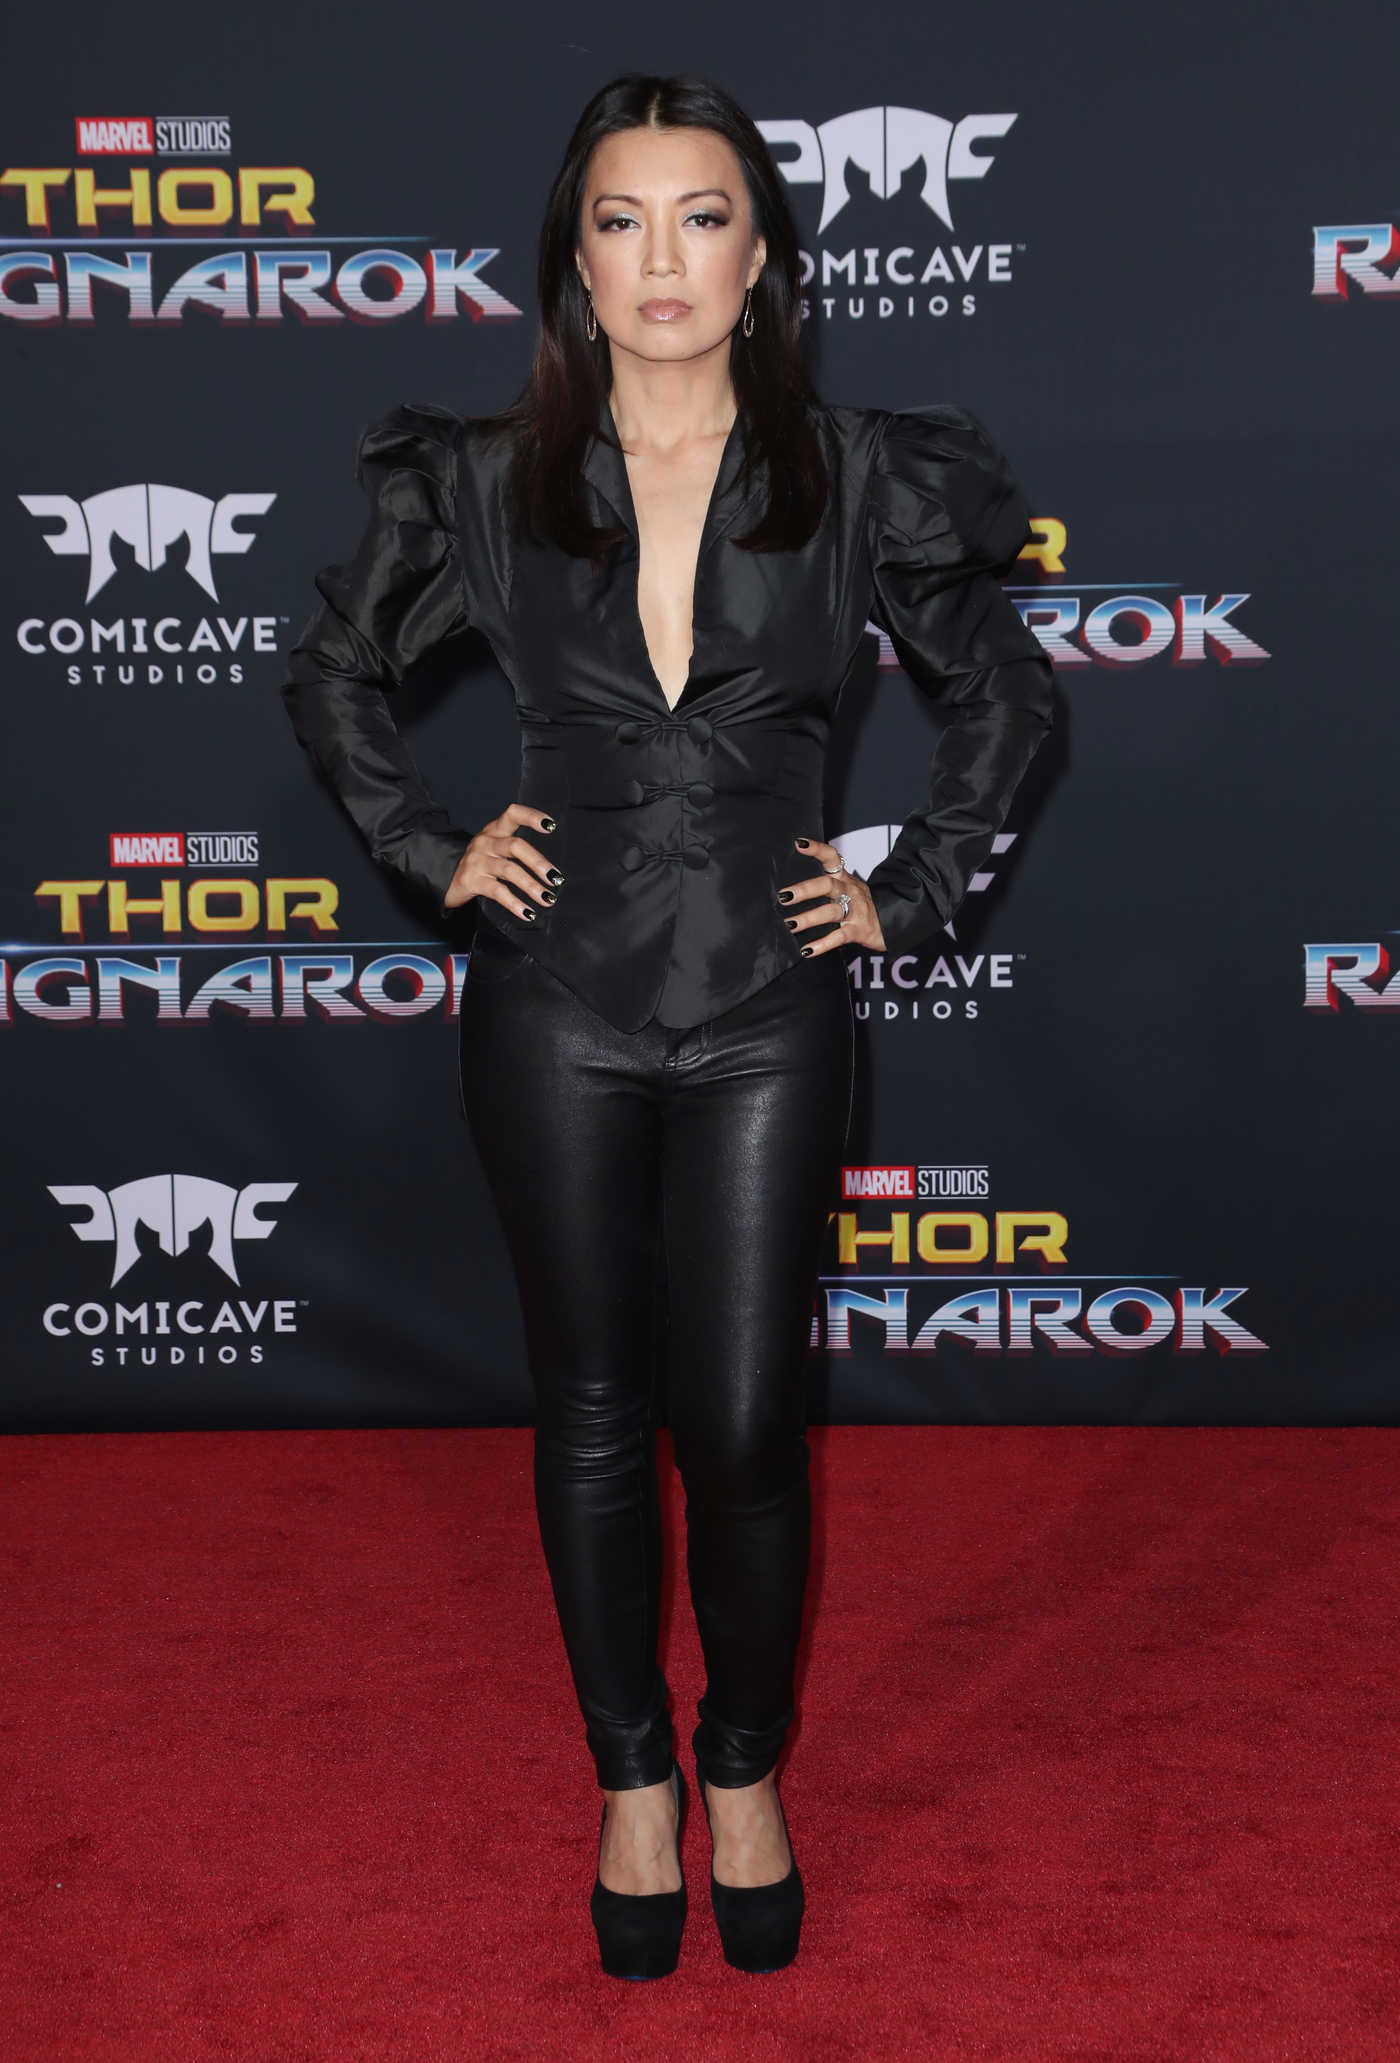 Ming-Na Wen at the Thor: Ragnarok Premiere in Los Angeles 10/10/2017